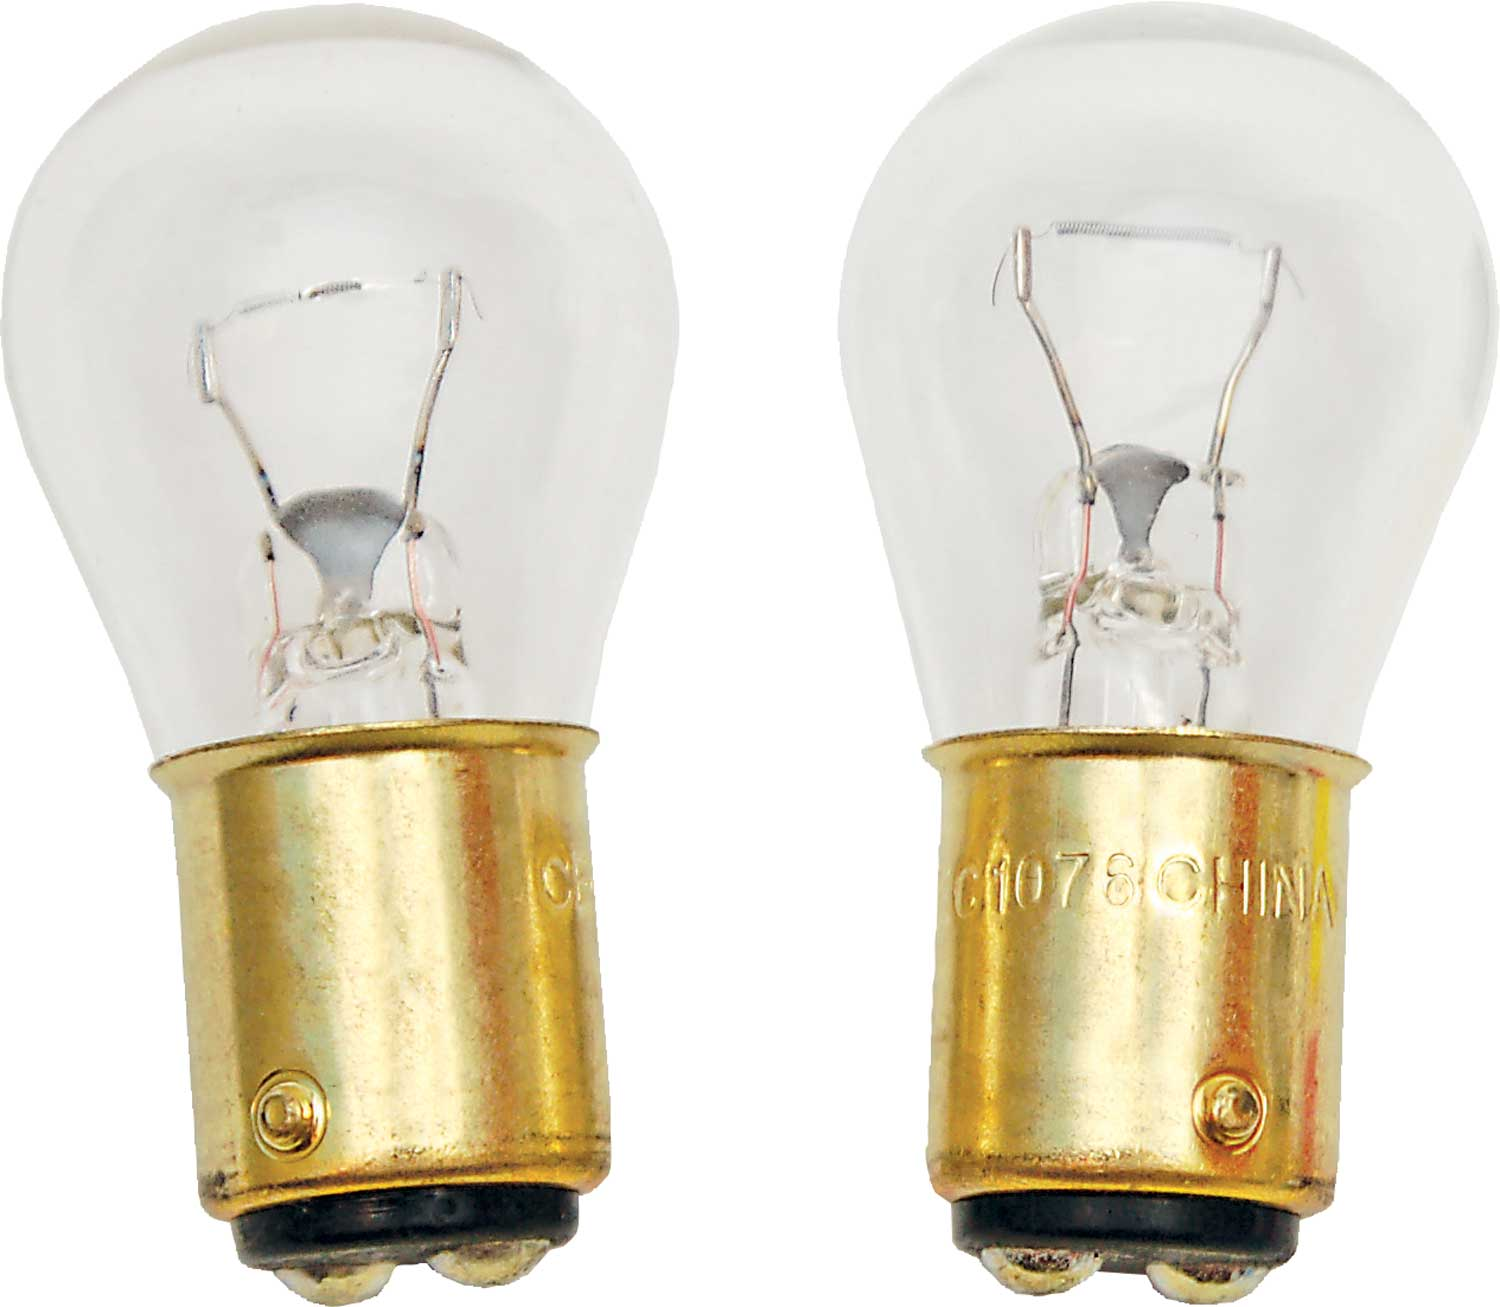 Automotive Type 12v Bulb Ref 1076 Double Contact Cec 1076bp Lamp Ca Gps Wiring Diagram Light Bulbs Camping World